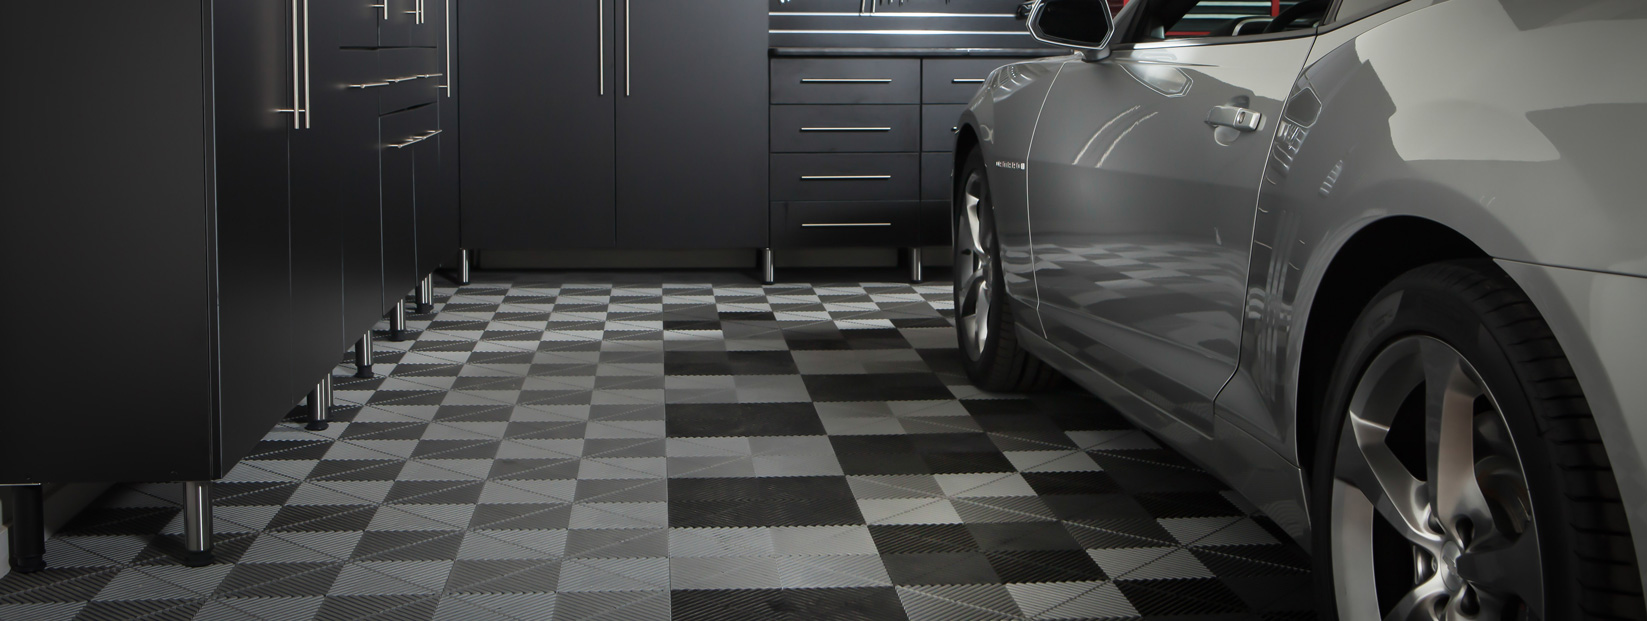 Garage Floor Tiles Lincoln